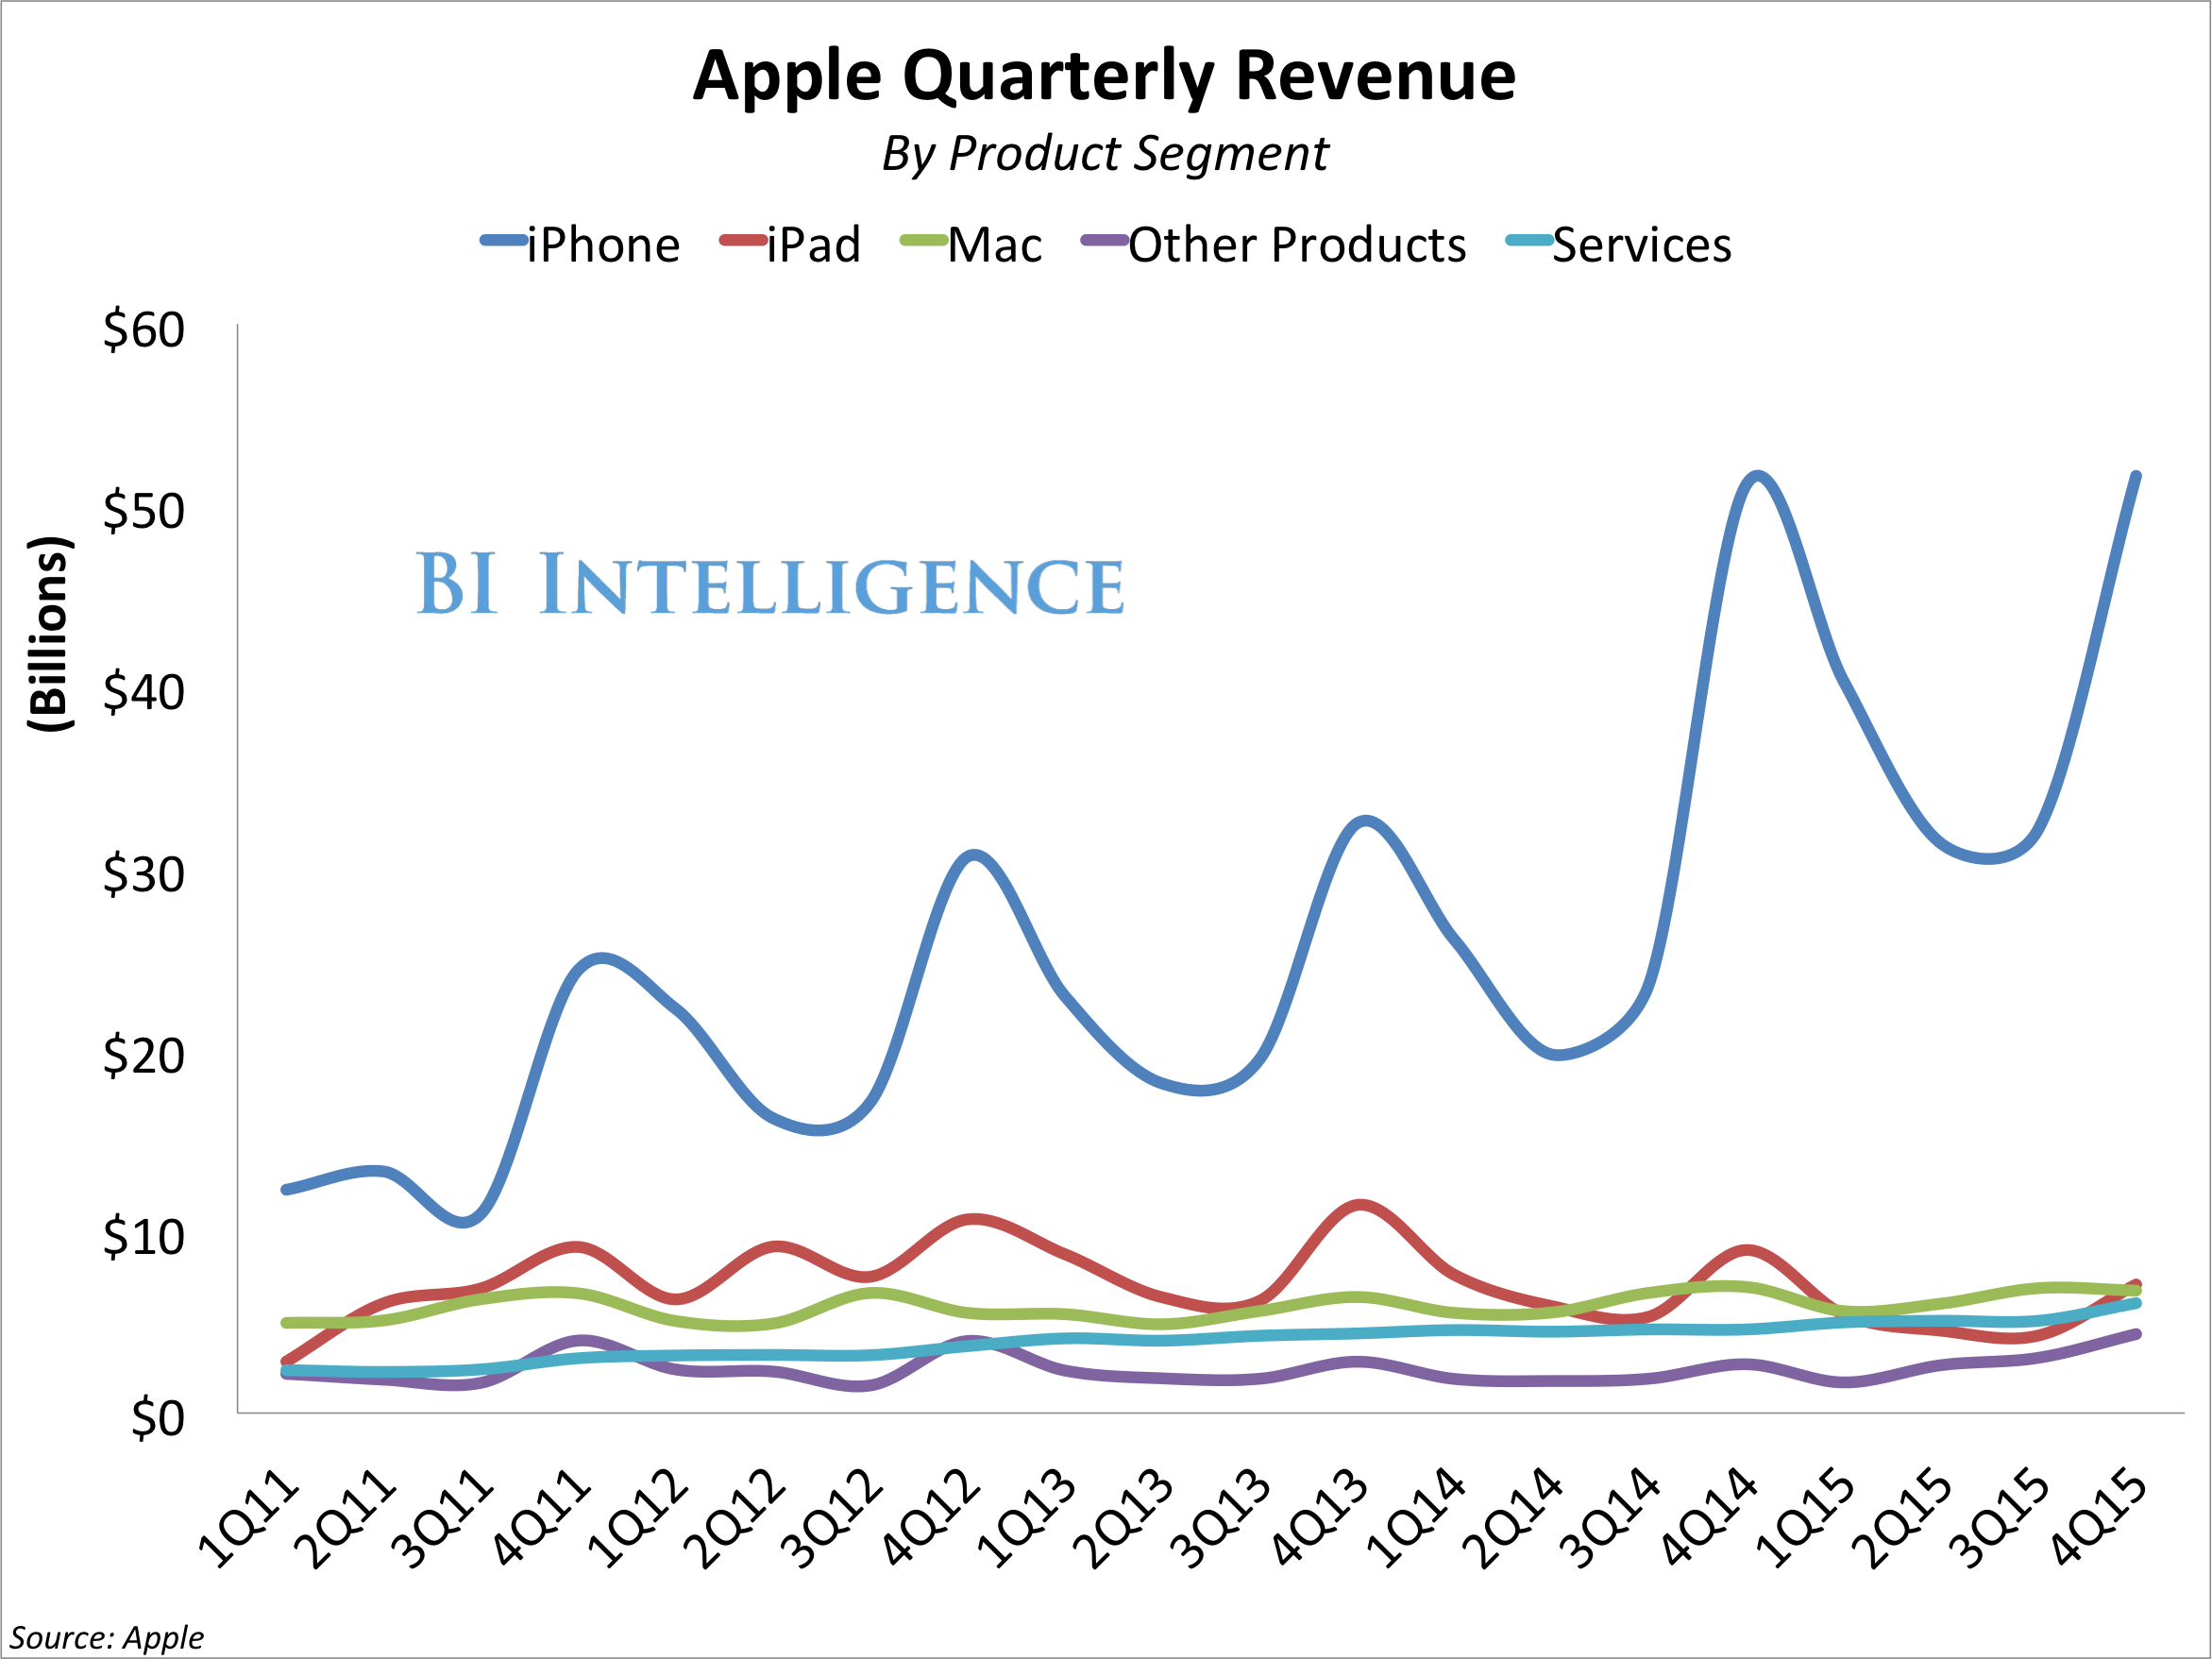 bii apple revenue by product line 4Q15